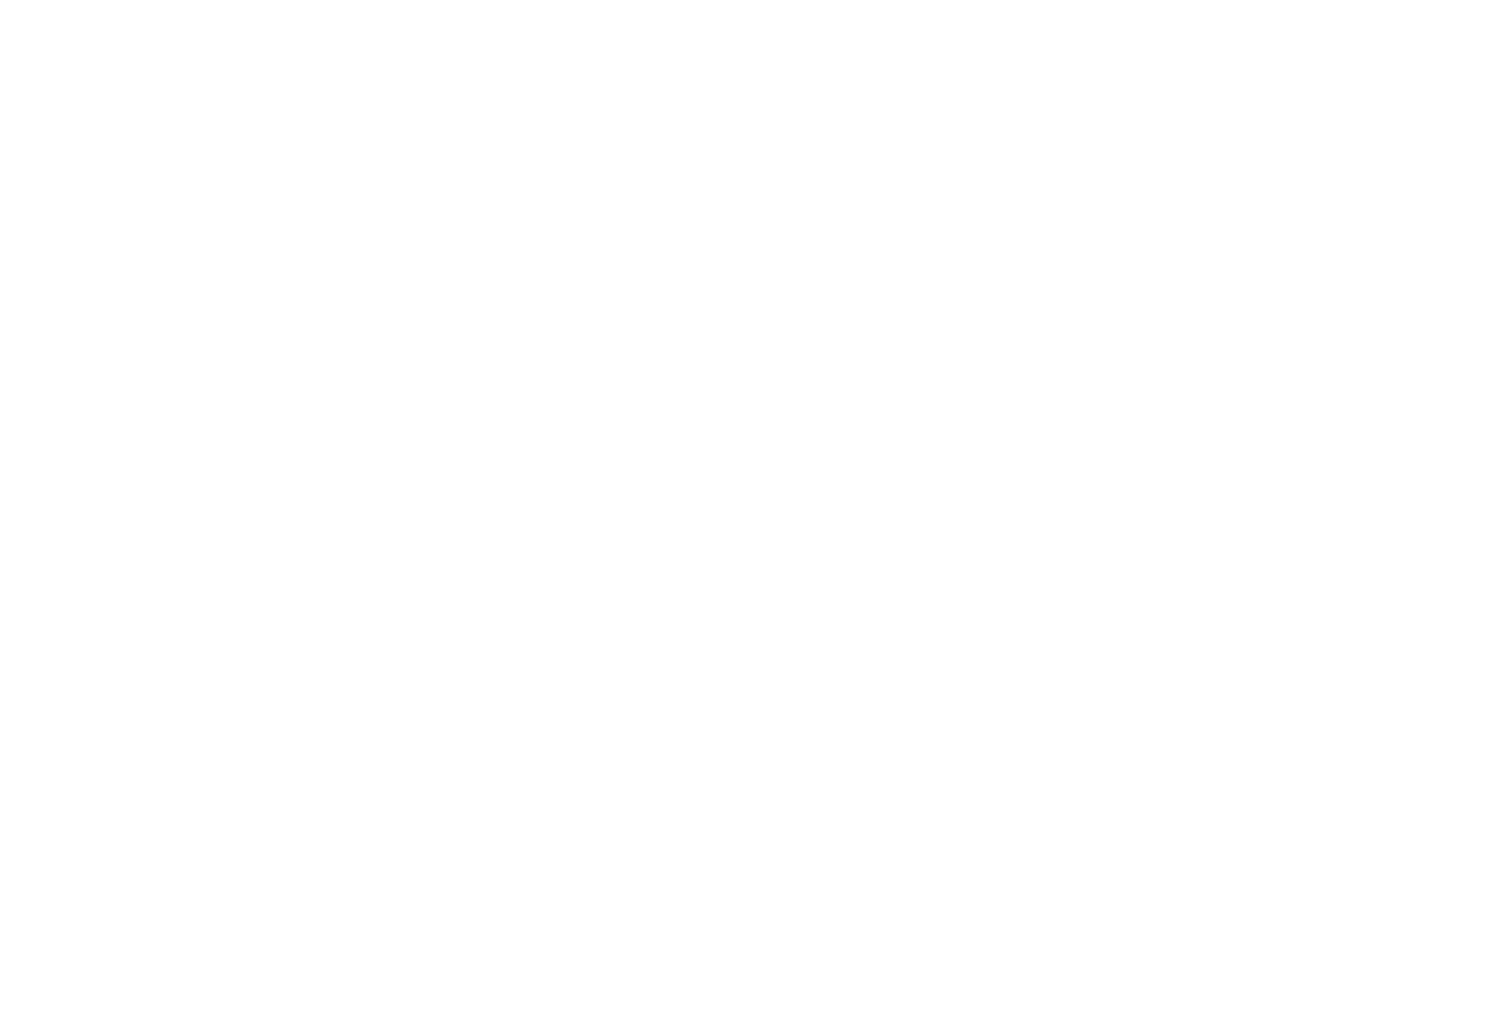 CORE-Aire | Cannabis Odor Removal